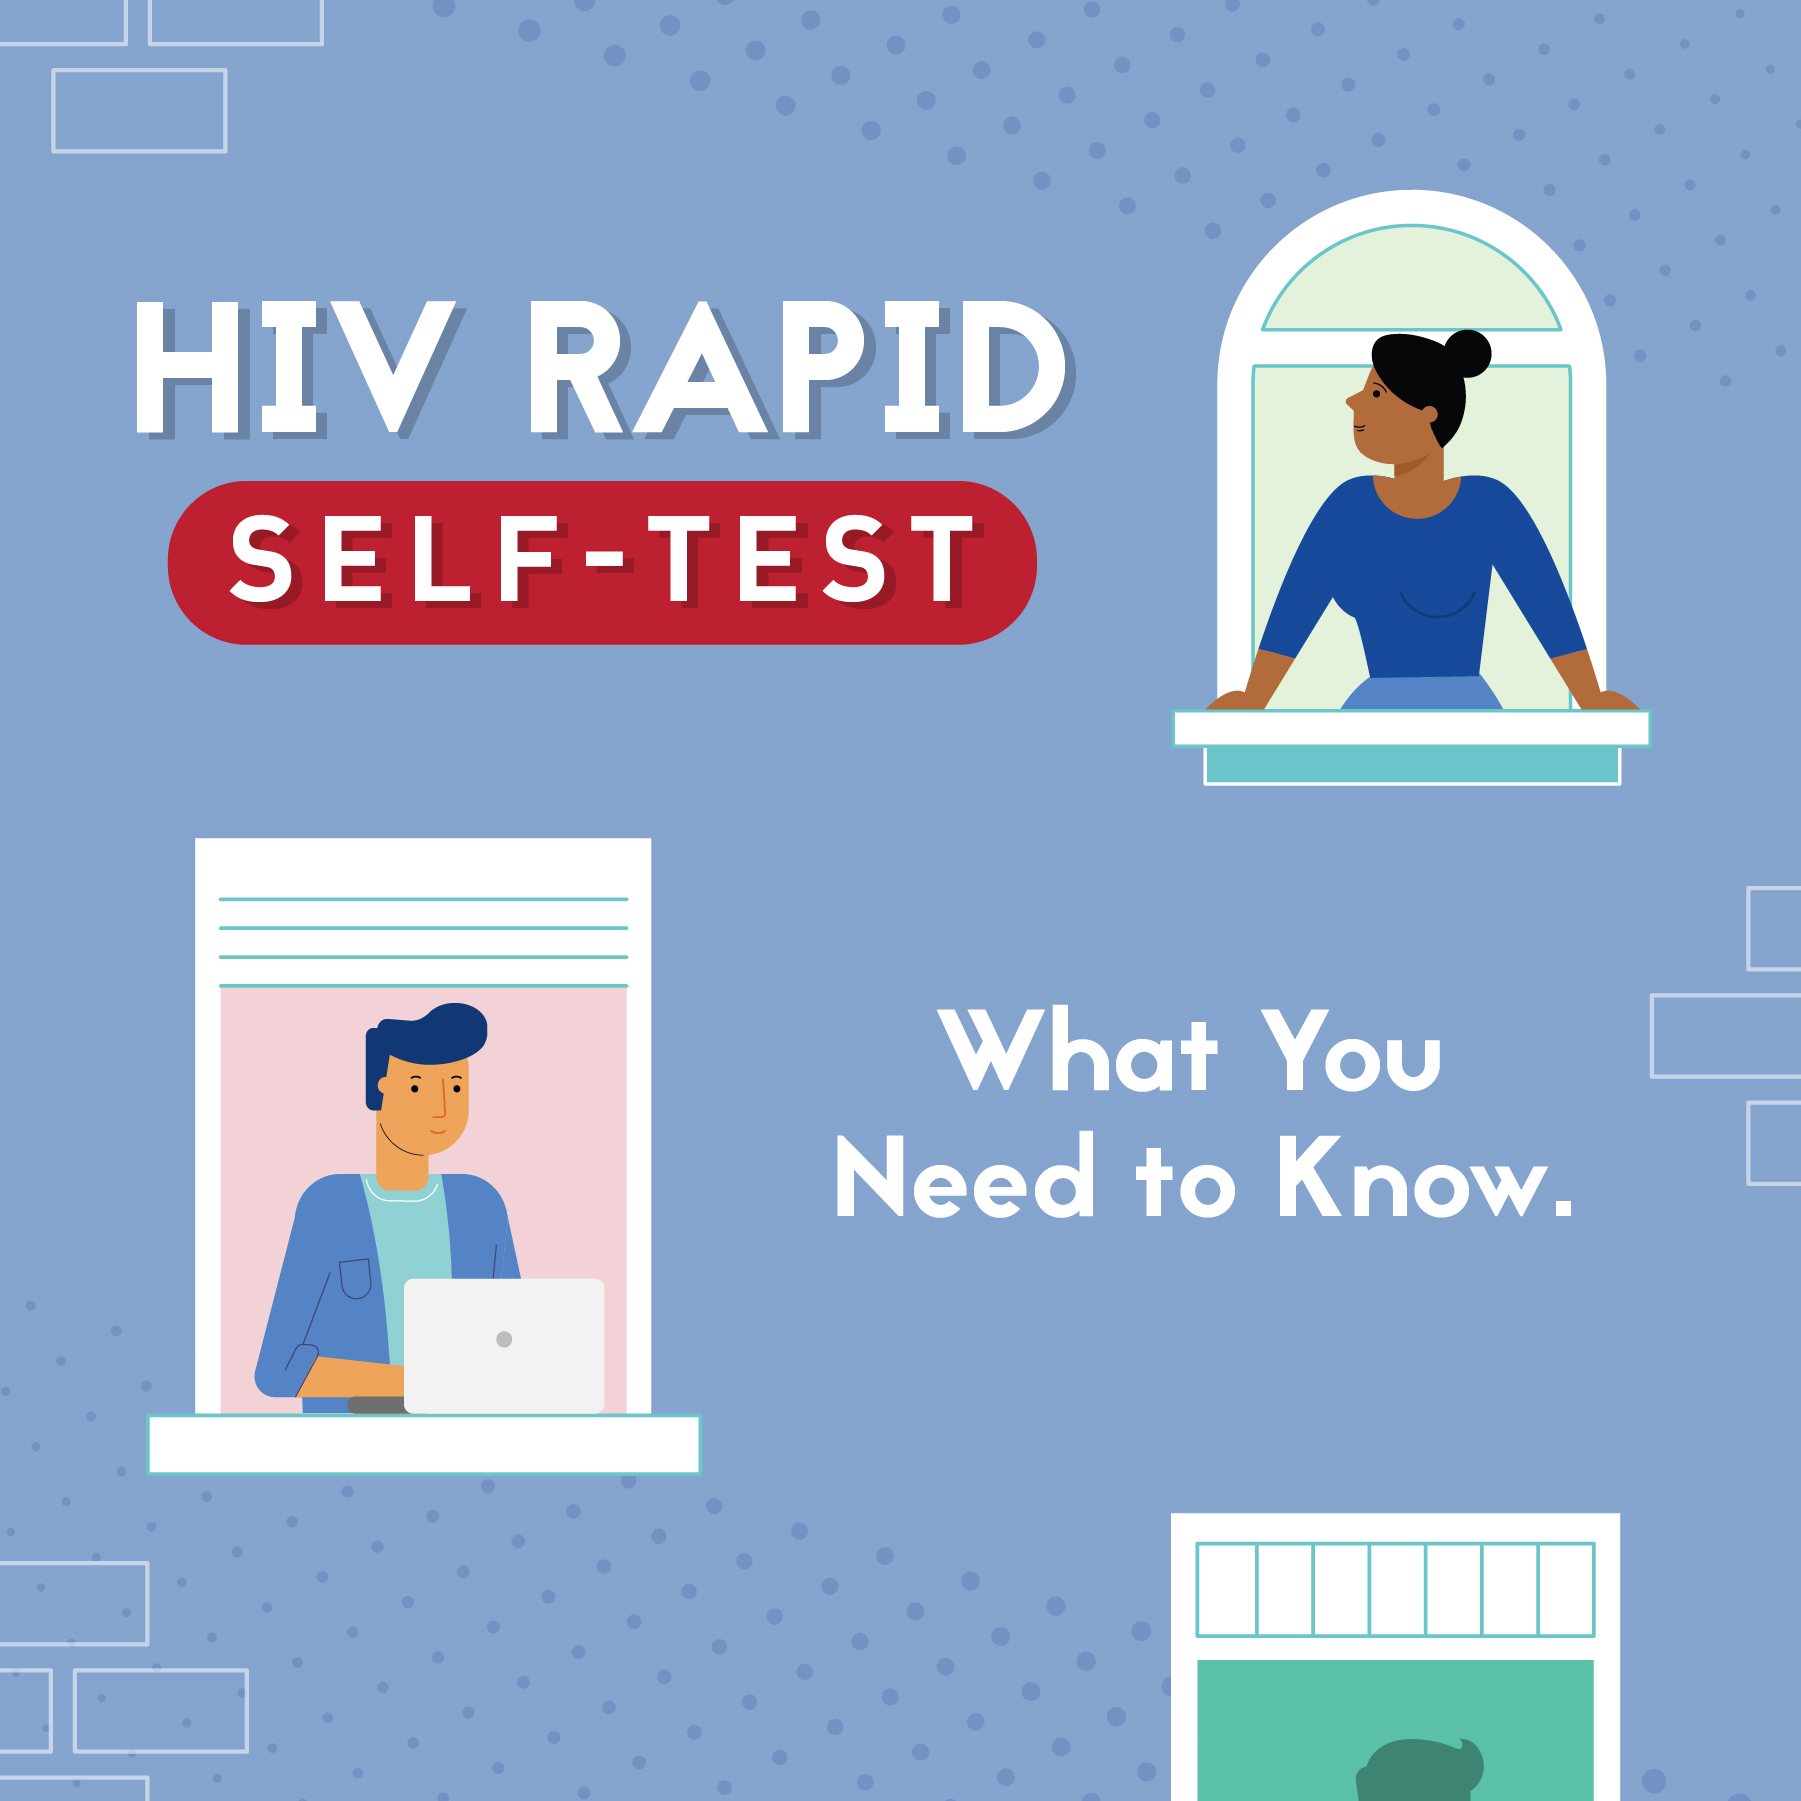 HIV rapid self-test. What you need to know.